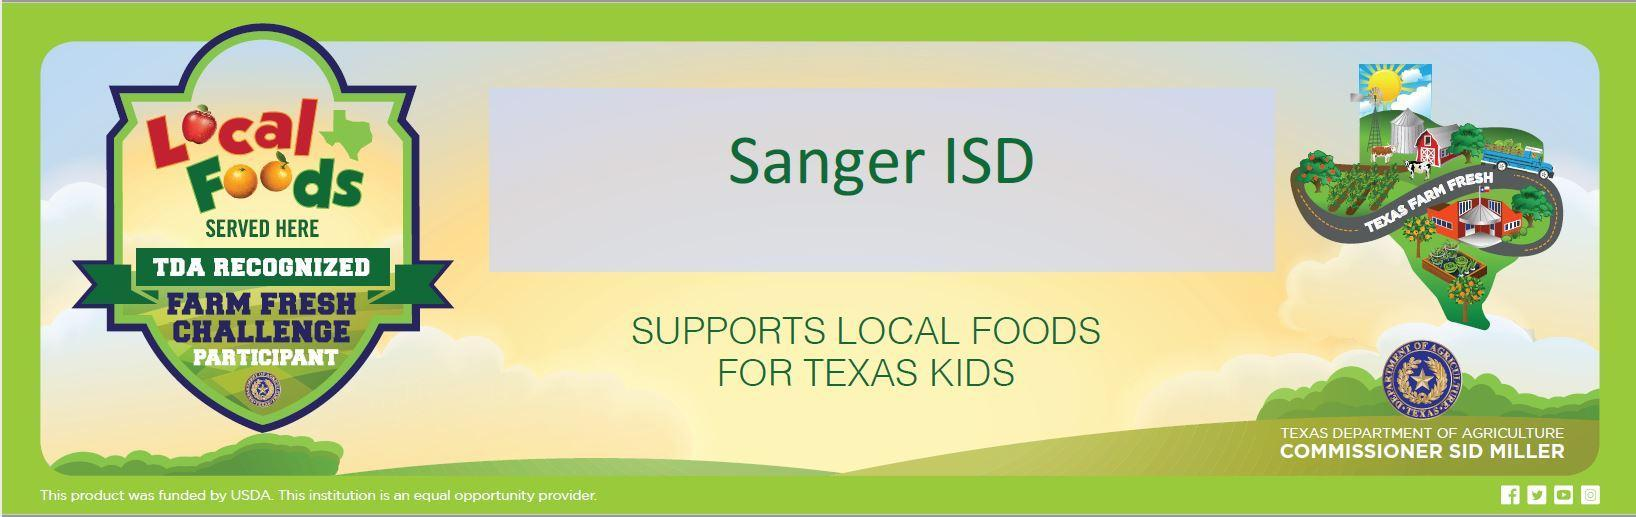 Sanger ISD supports local foods for Texas kids